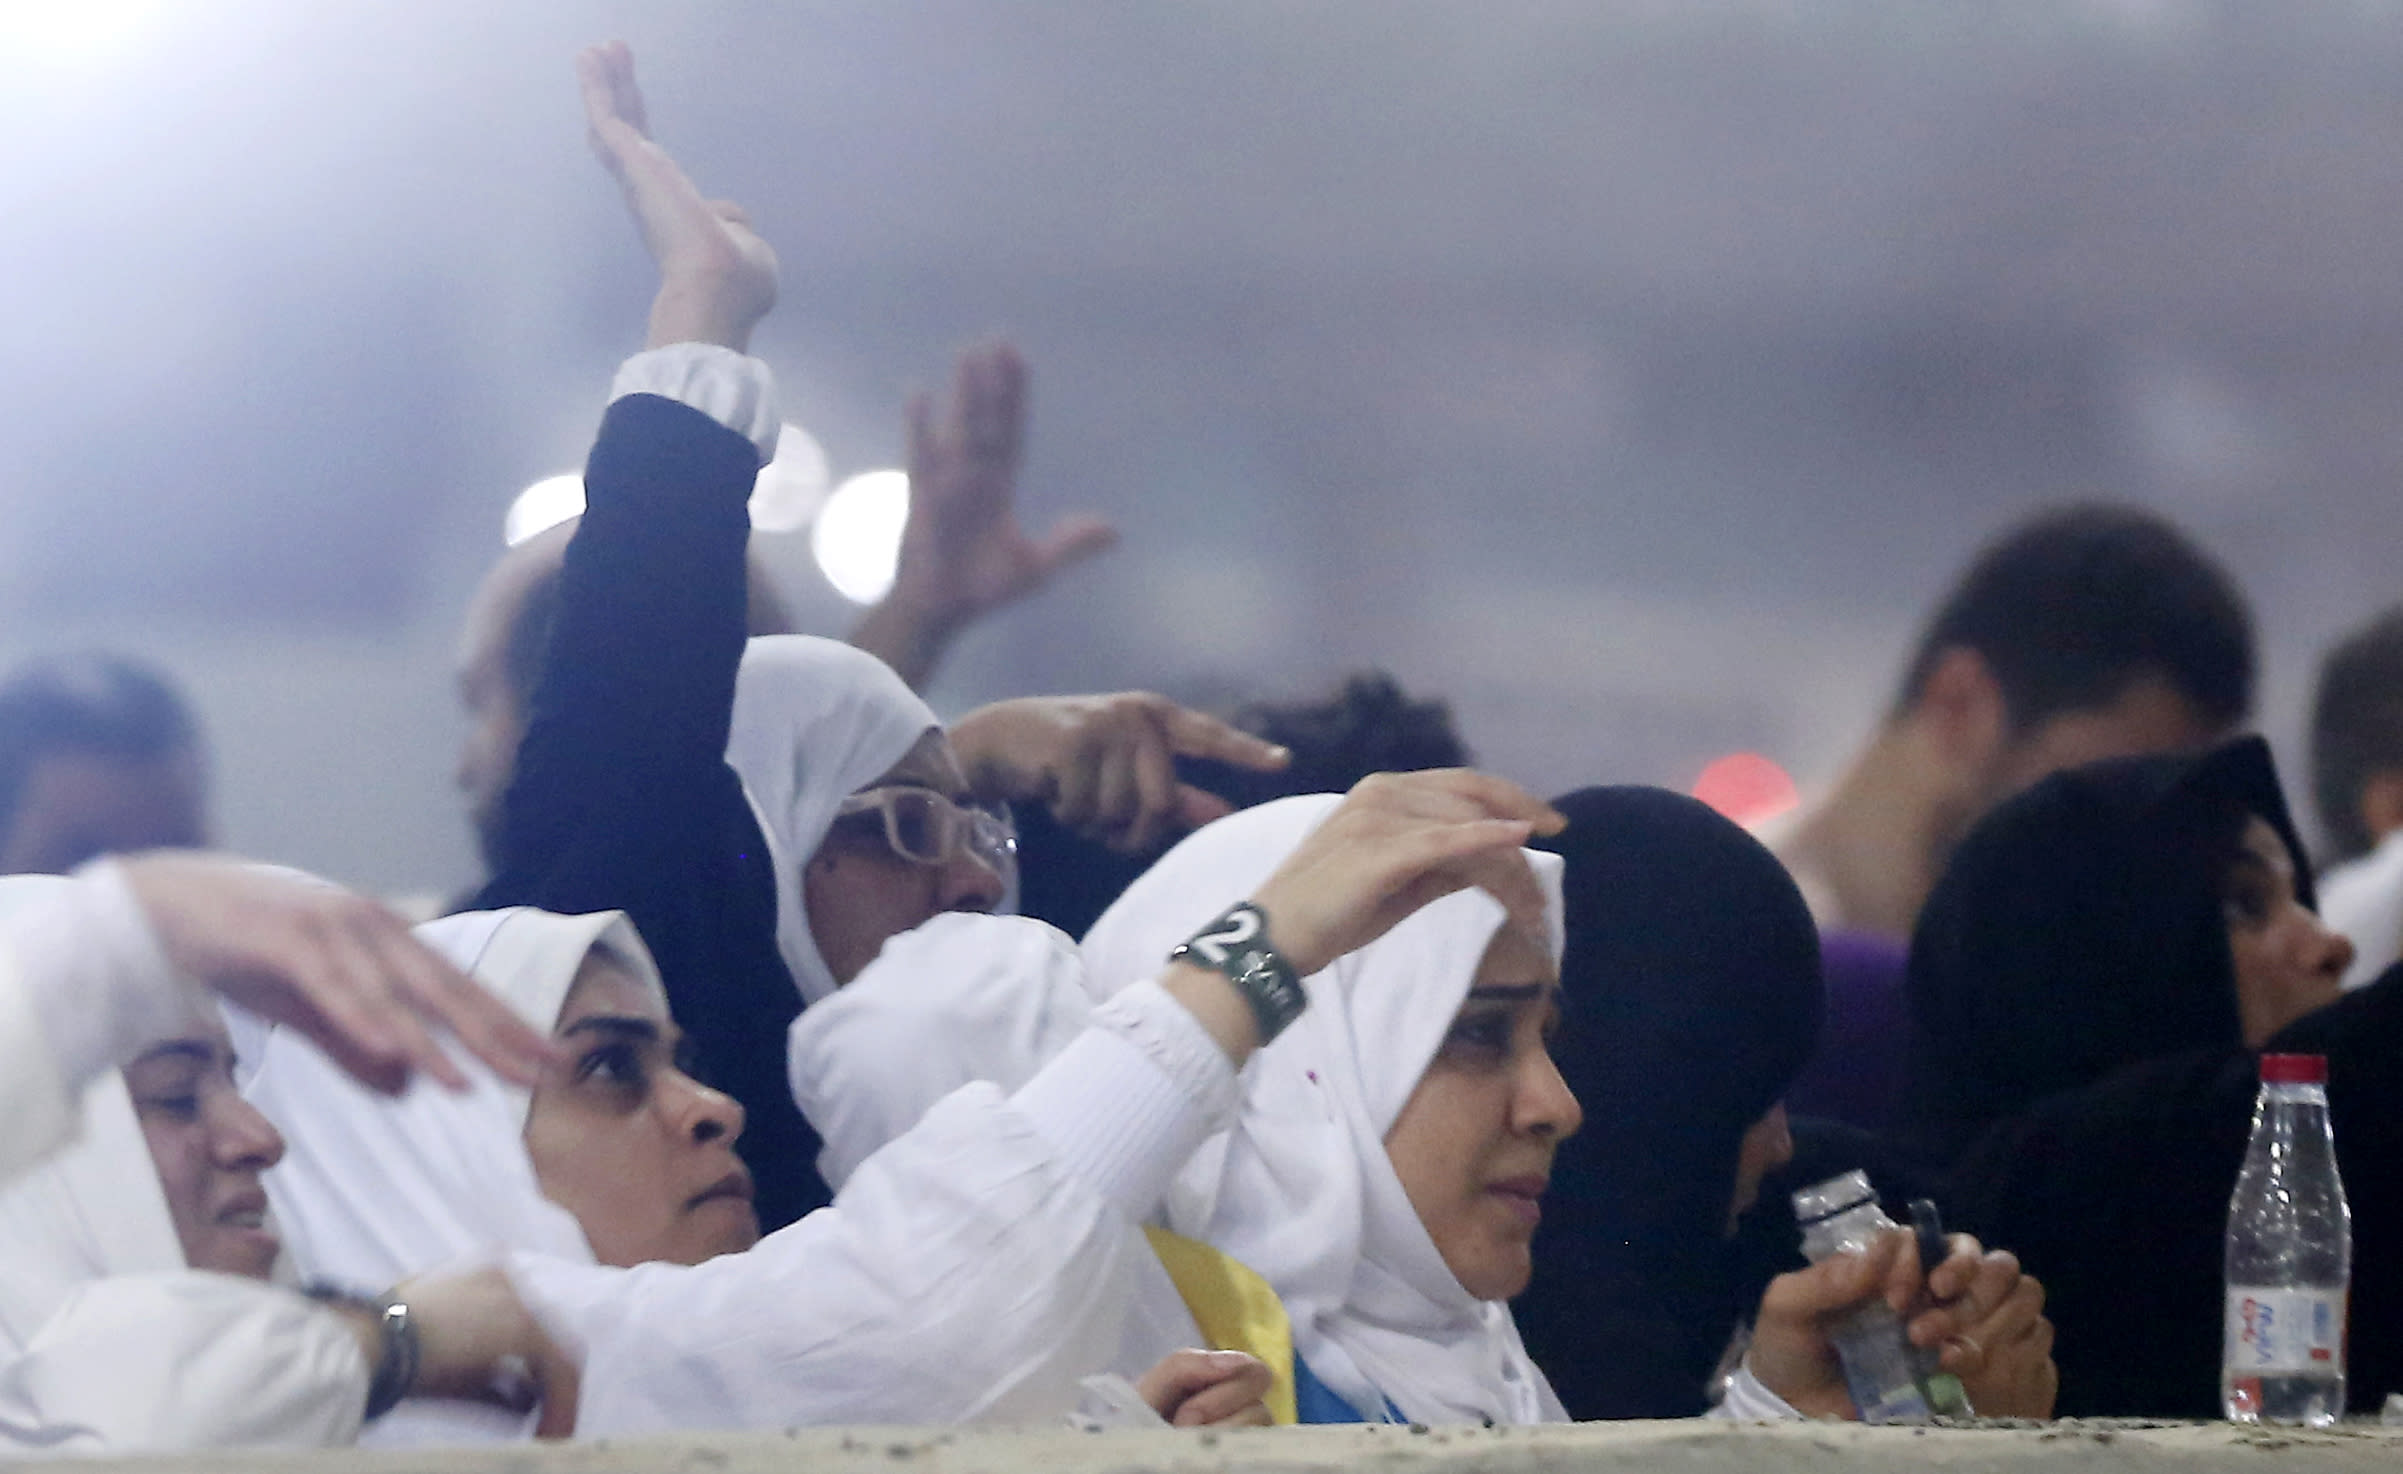 """Muslim pilgrims cast stones at a pillar symbolizing the stoning of Satan, in a ritual called """"Jamarat,"""" the last rite of the annual hajj, on the first day of Eid al-Adha, in Mina near the holy city of Mecca, Saudi Arabia, Sunday, Aug. 11, 2019. The hajj is required of all Muslims to perform once in their lifetime if they are financially and physically able. (AP Photo/Amr Nabil)"""